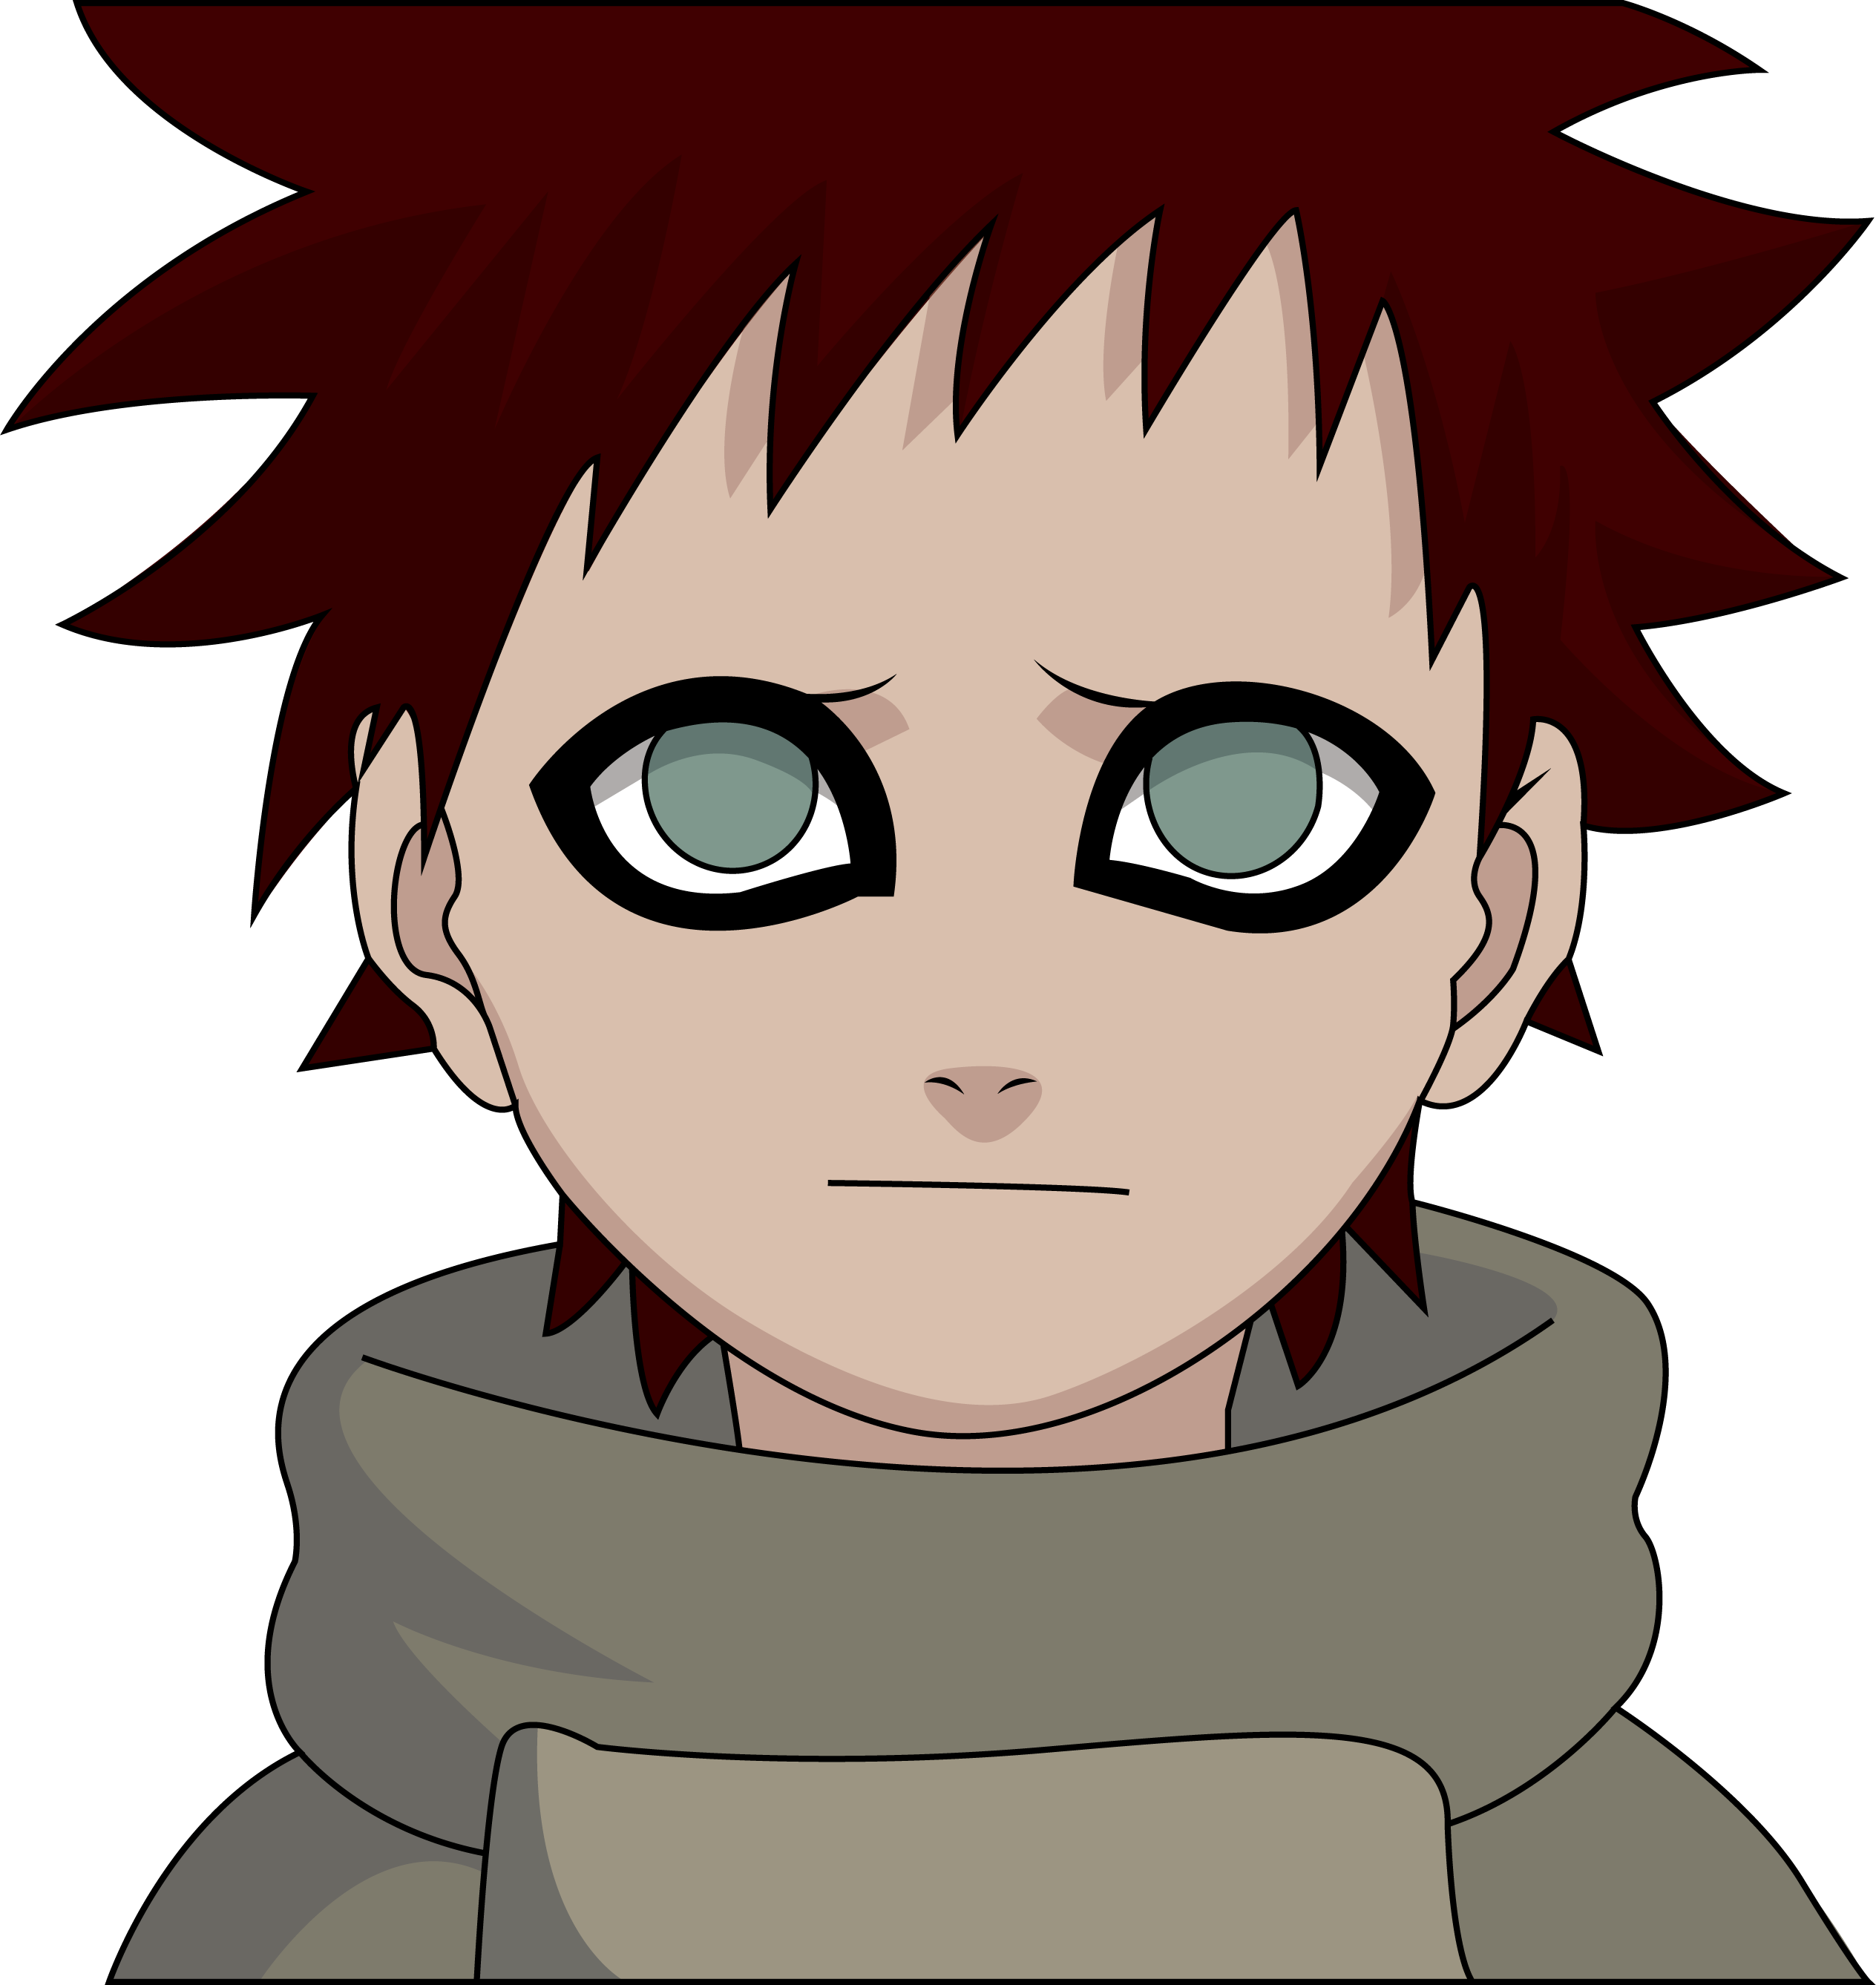 Gaara Kid By Suka-chan92 On DeviantArt